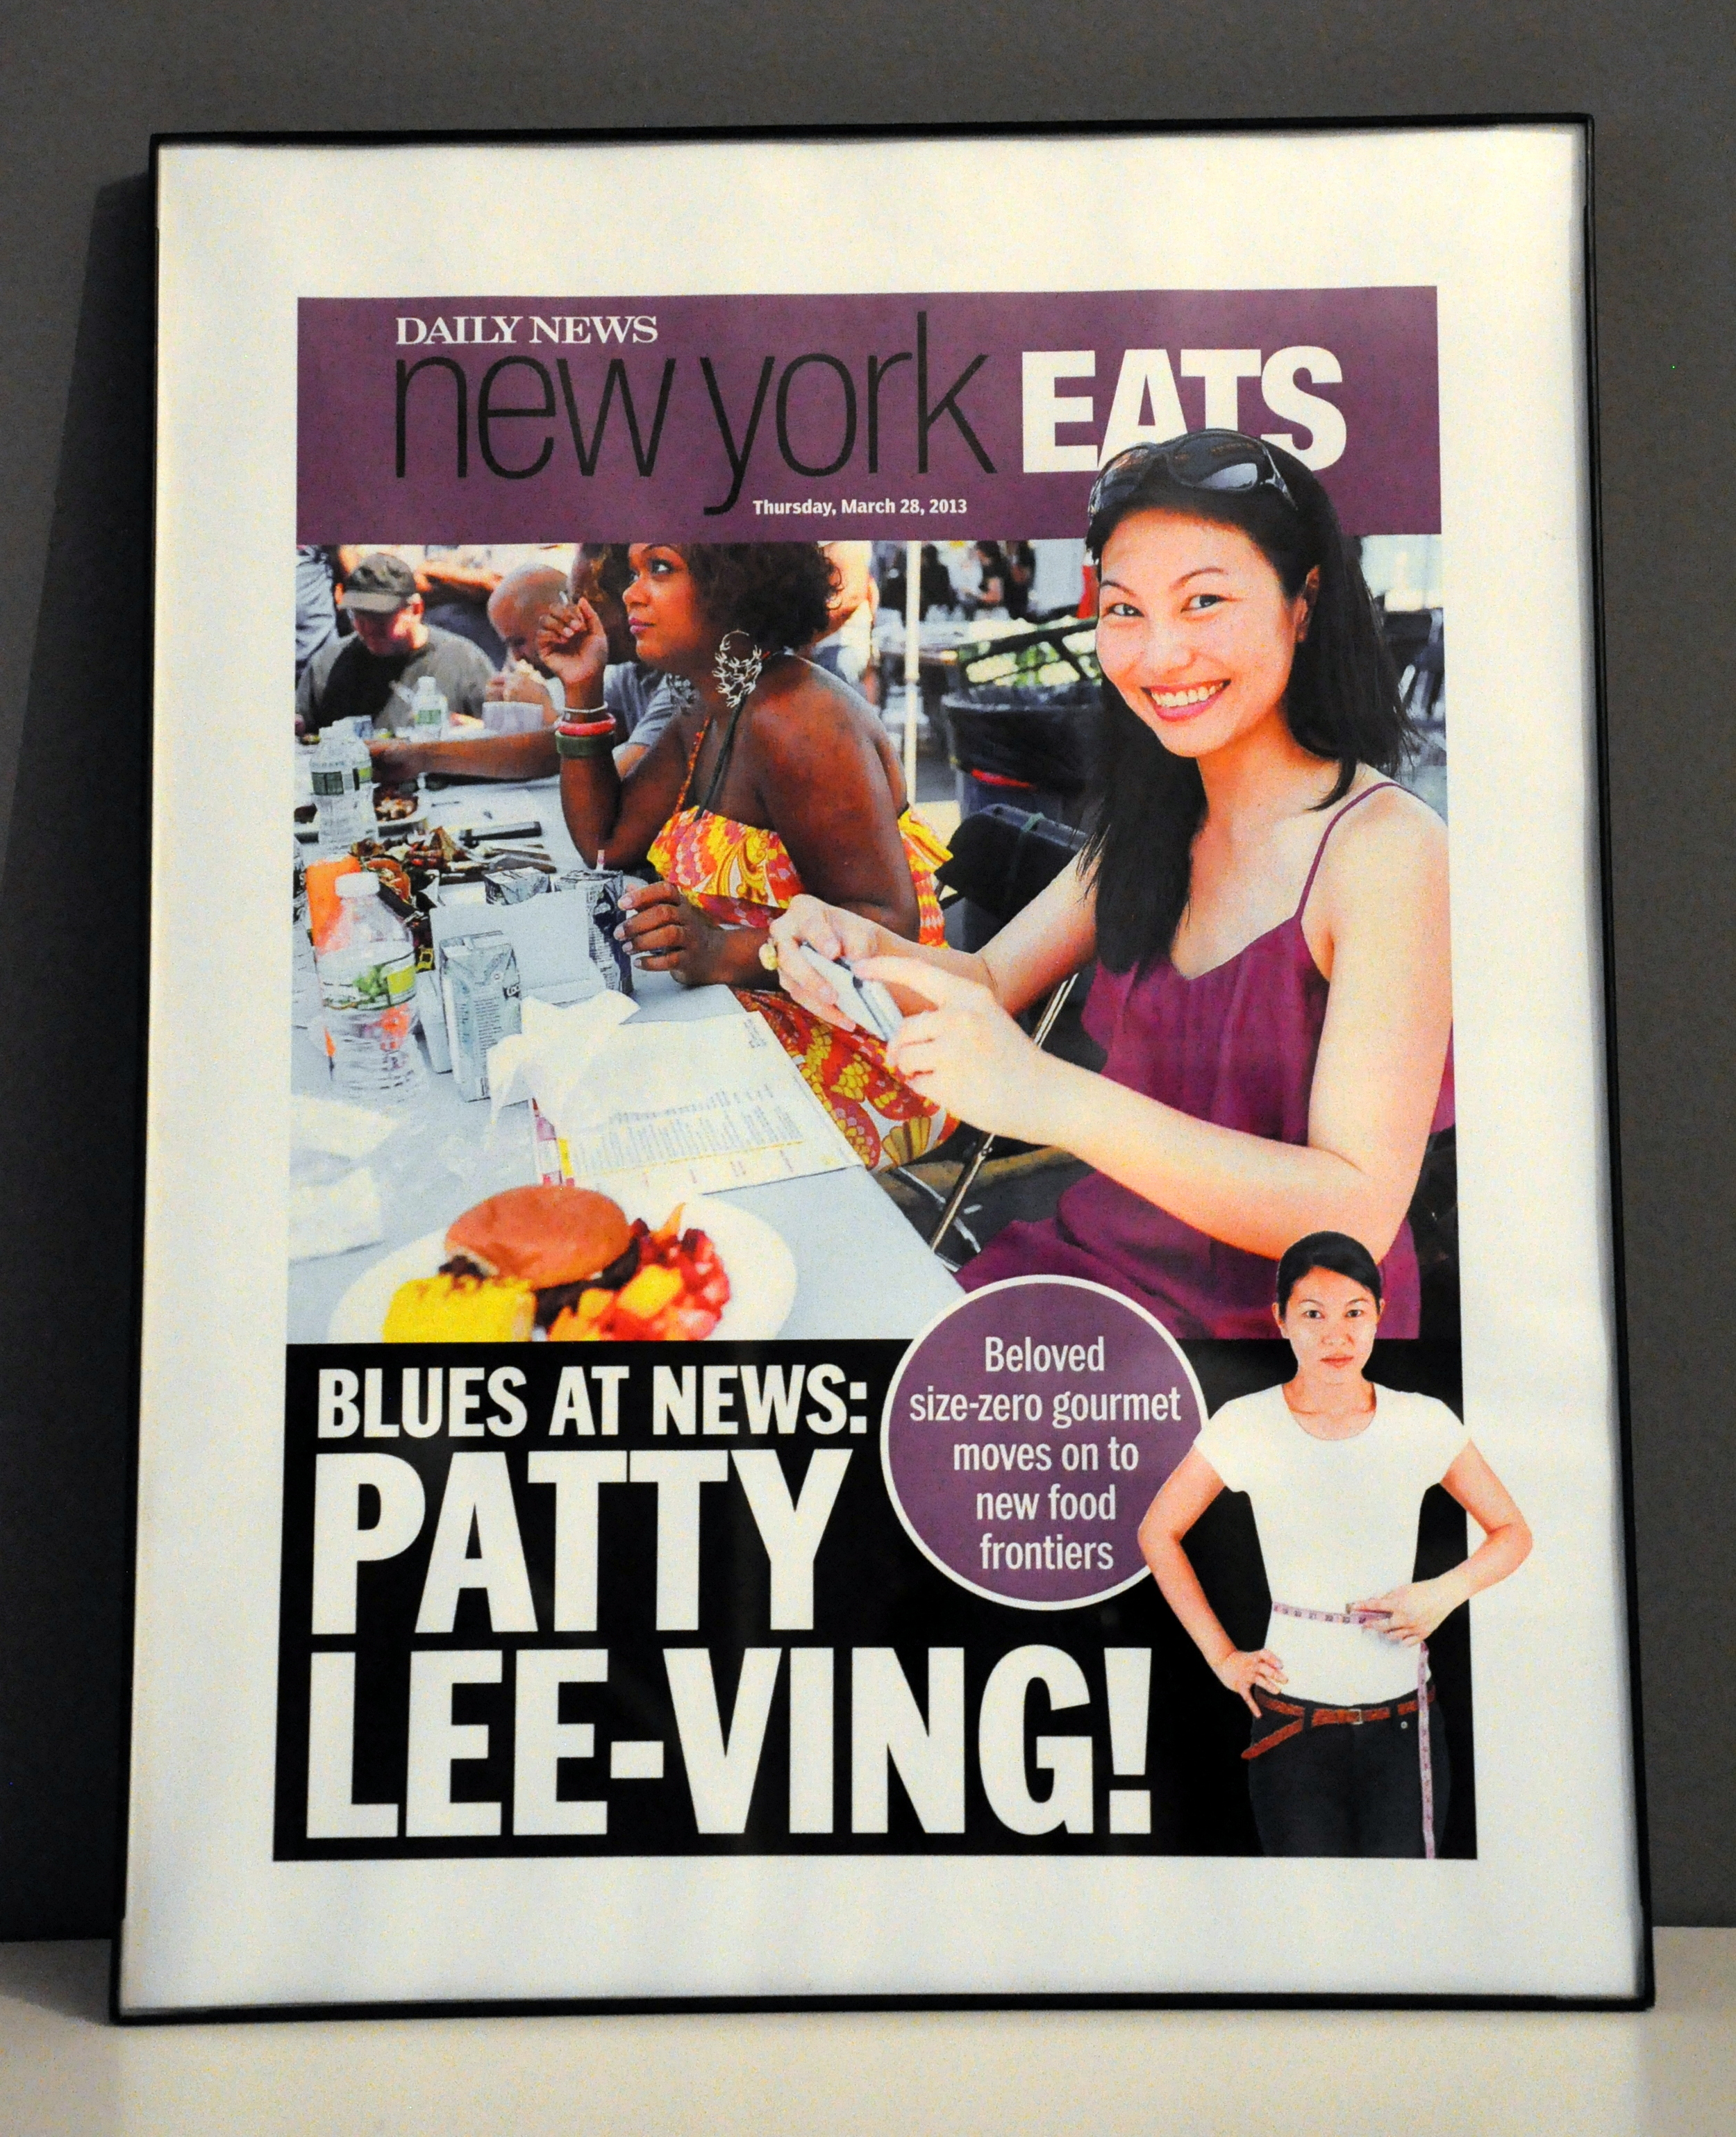 Farewell gift from the NYDN features team